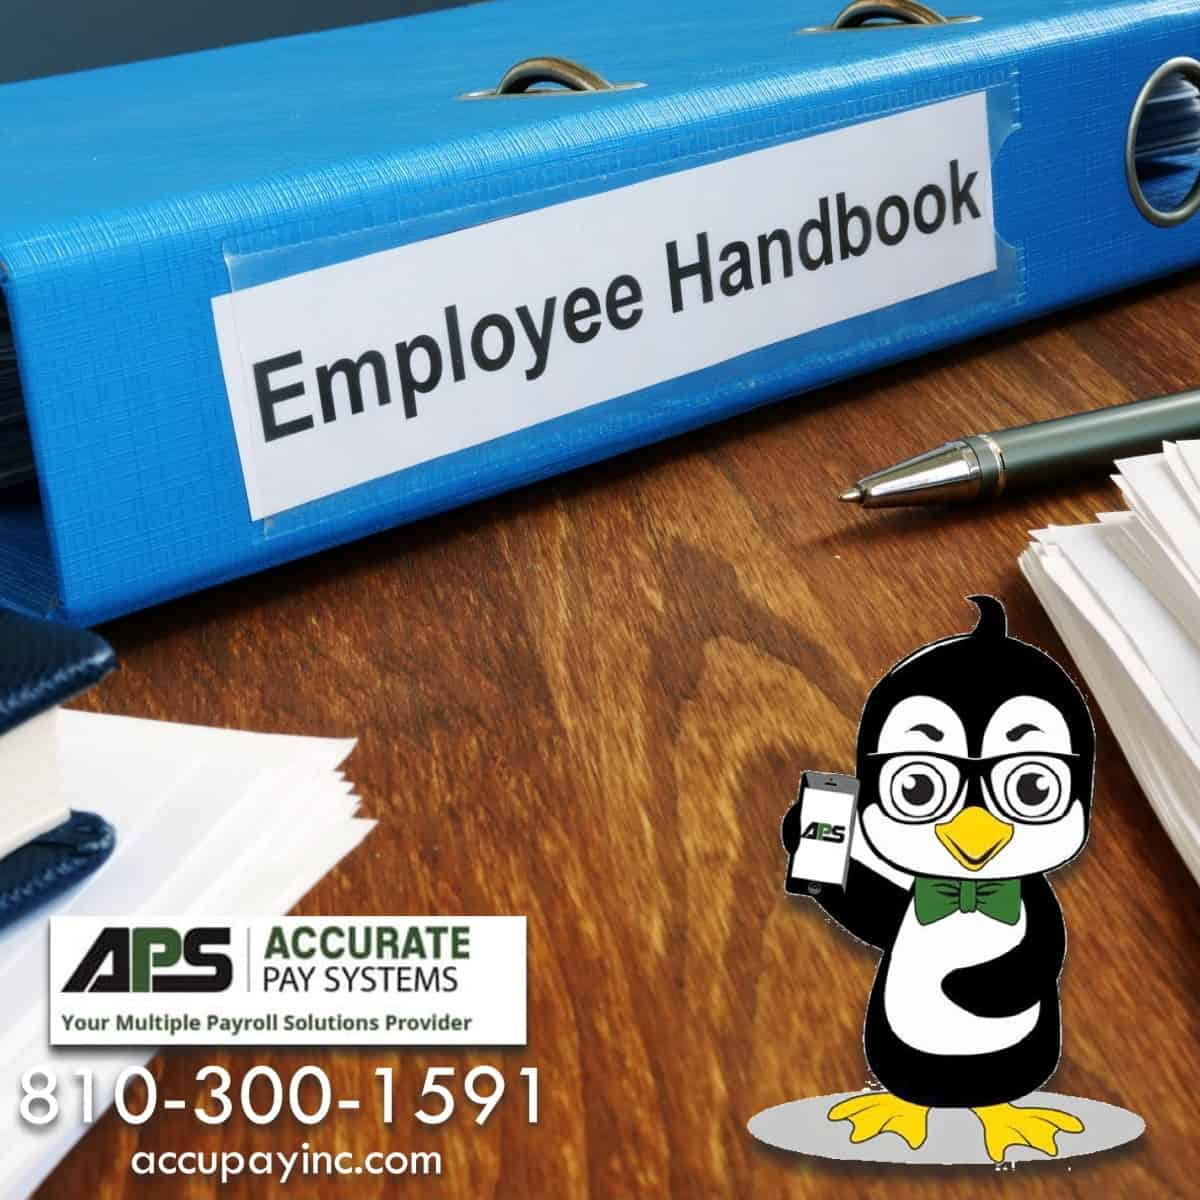 Employee handbook from Accurate Pay Systems